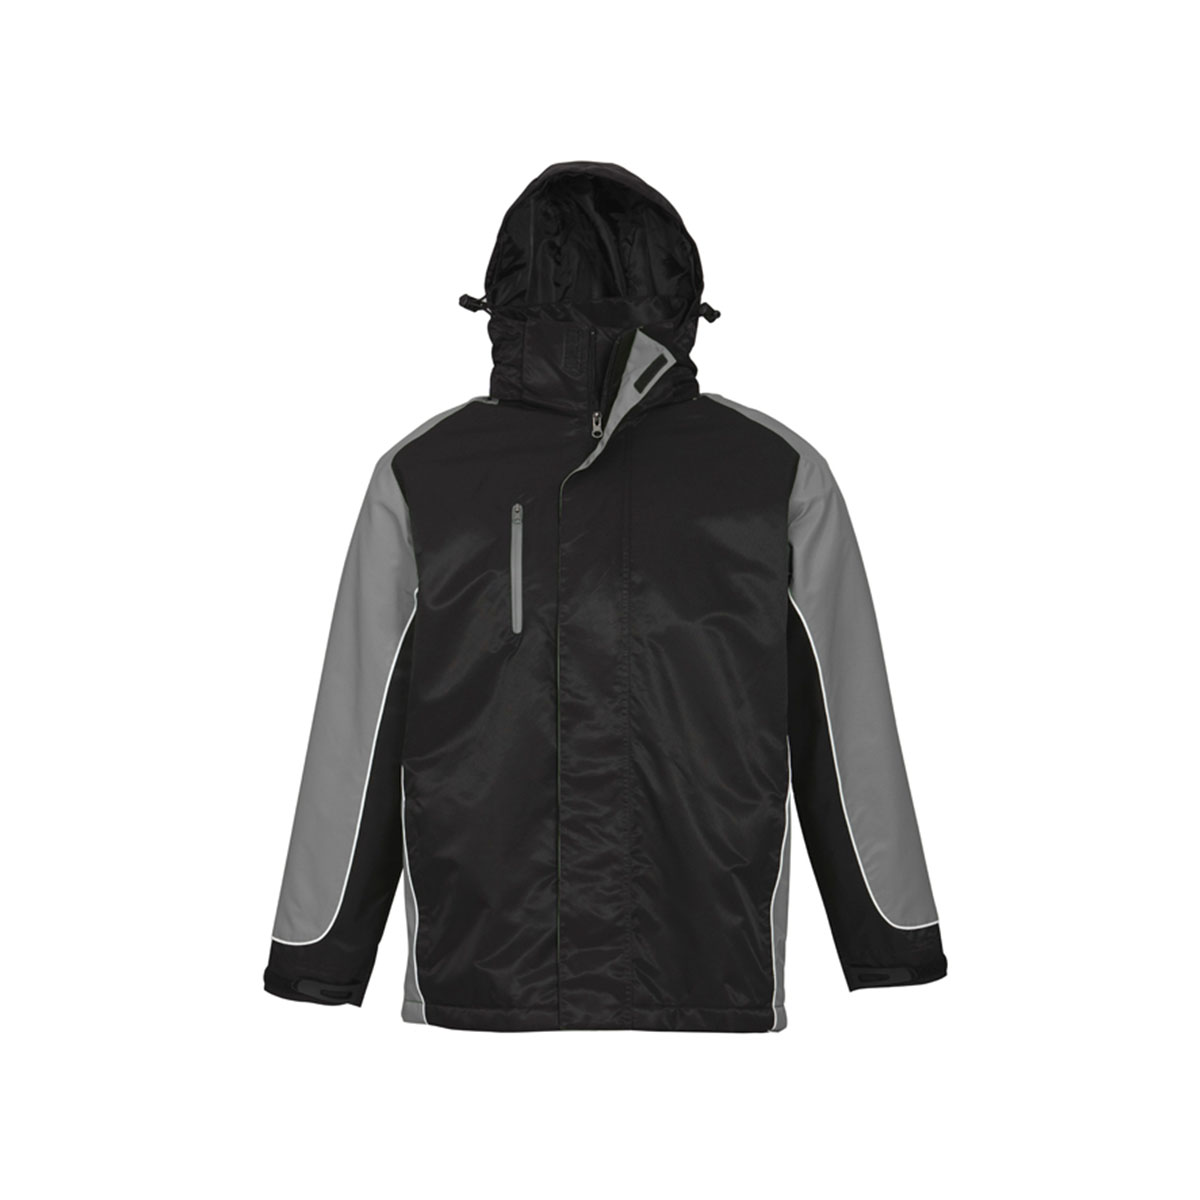 Unisex Nitro Jacket-Black / Grey / White